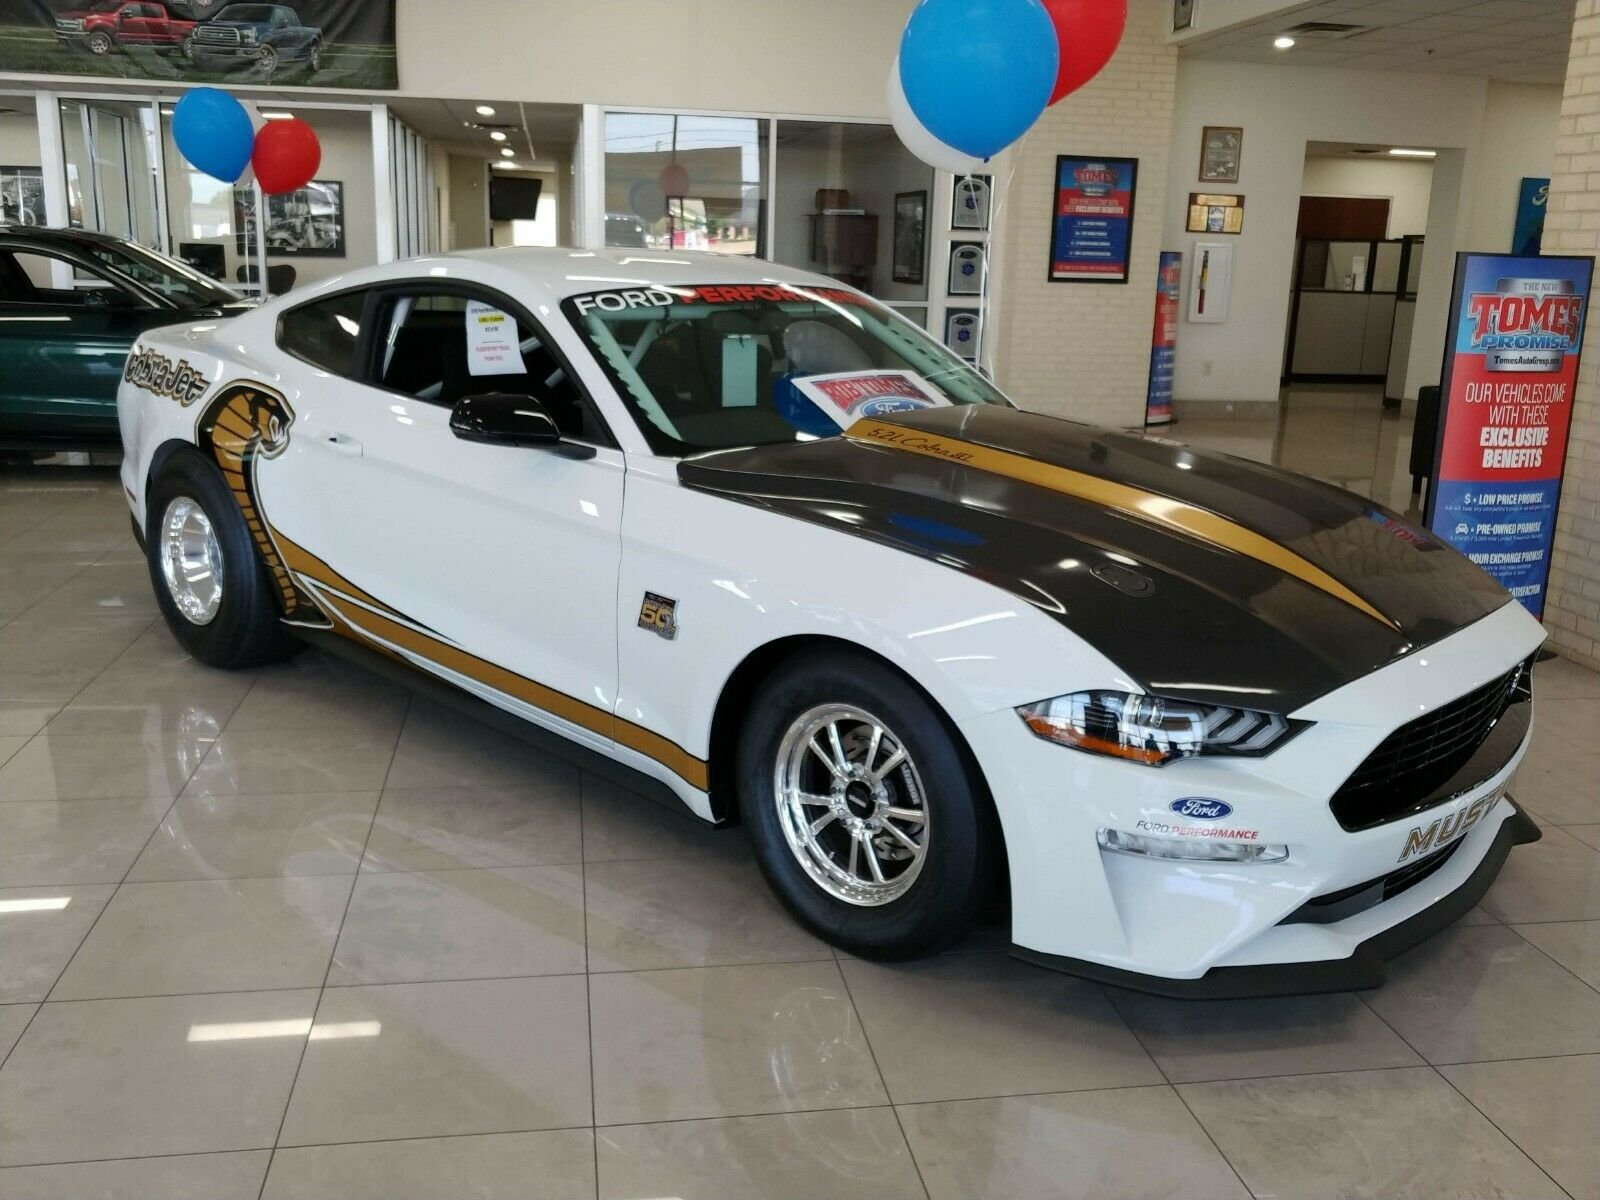 2018 Ford Mustang Cobra Jet- 50th Anniversary Edition